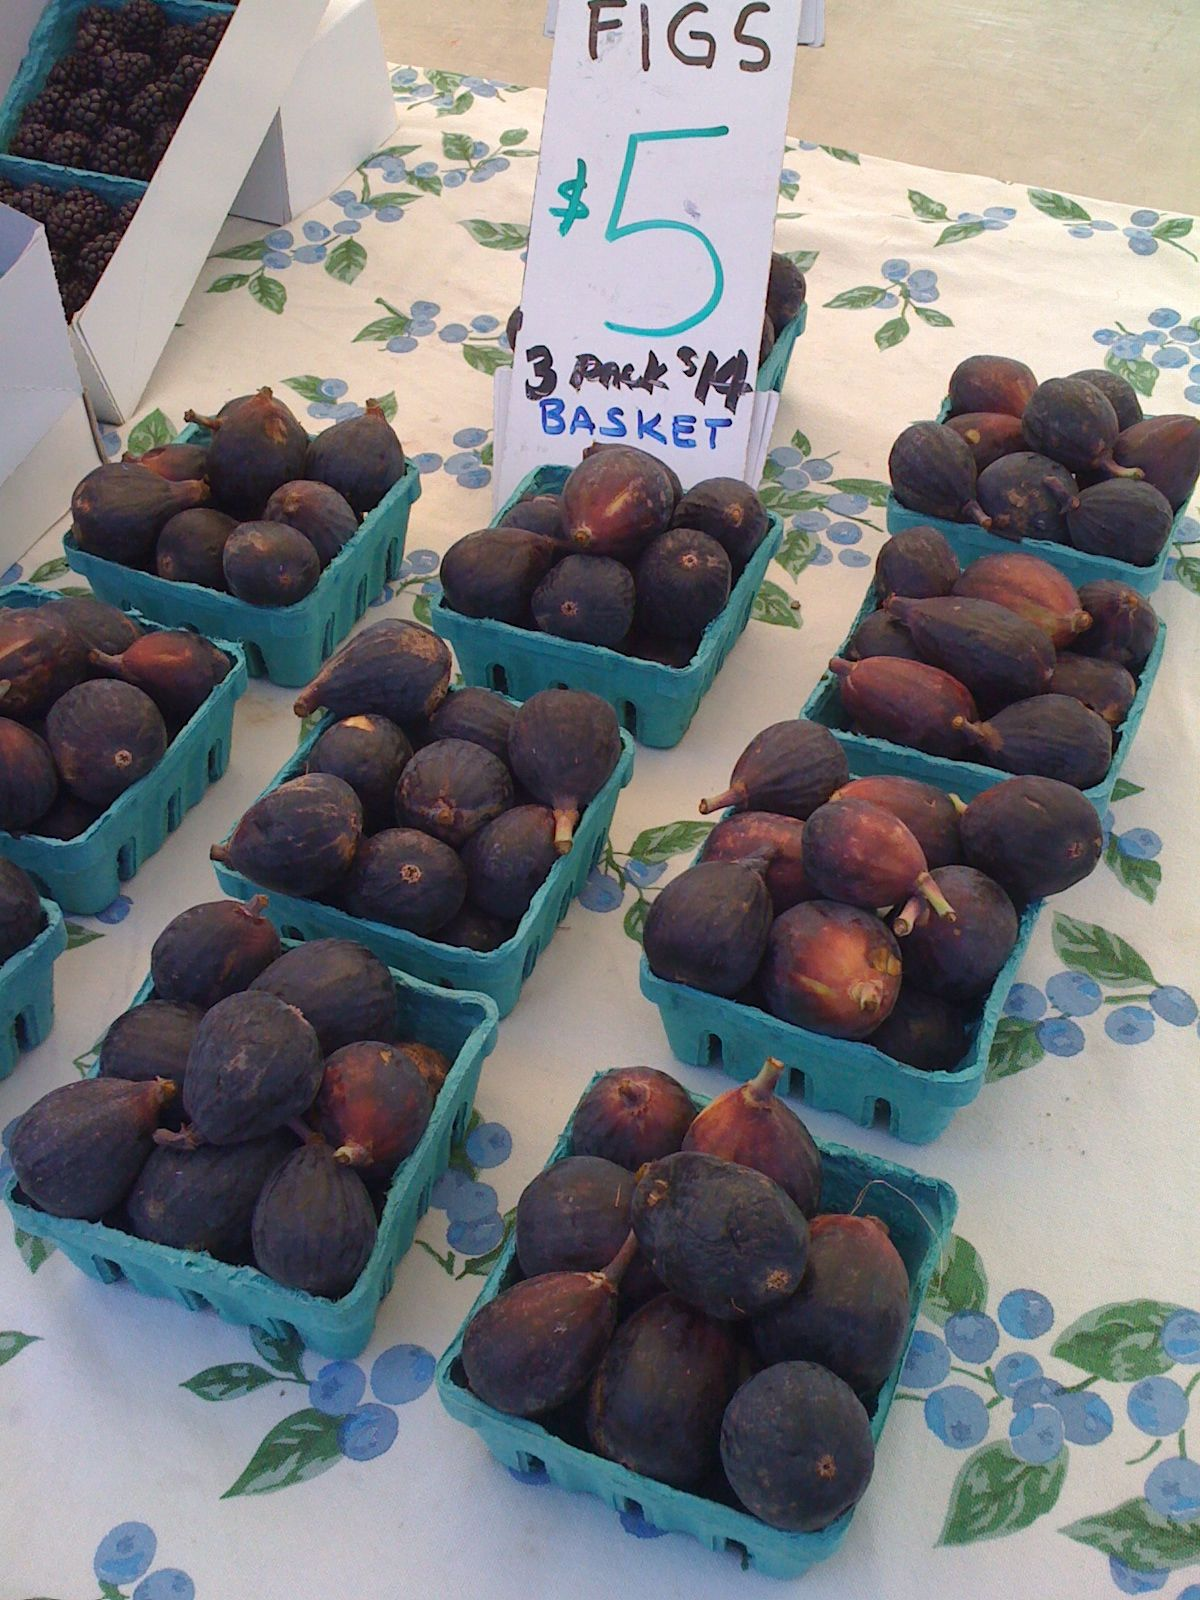 Figs at beverly hills farmers market farmers market fig